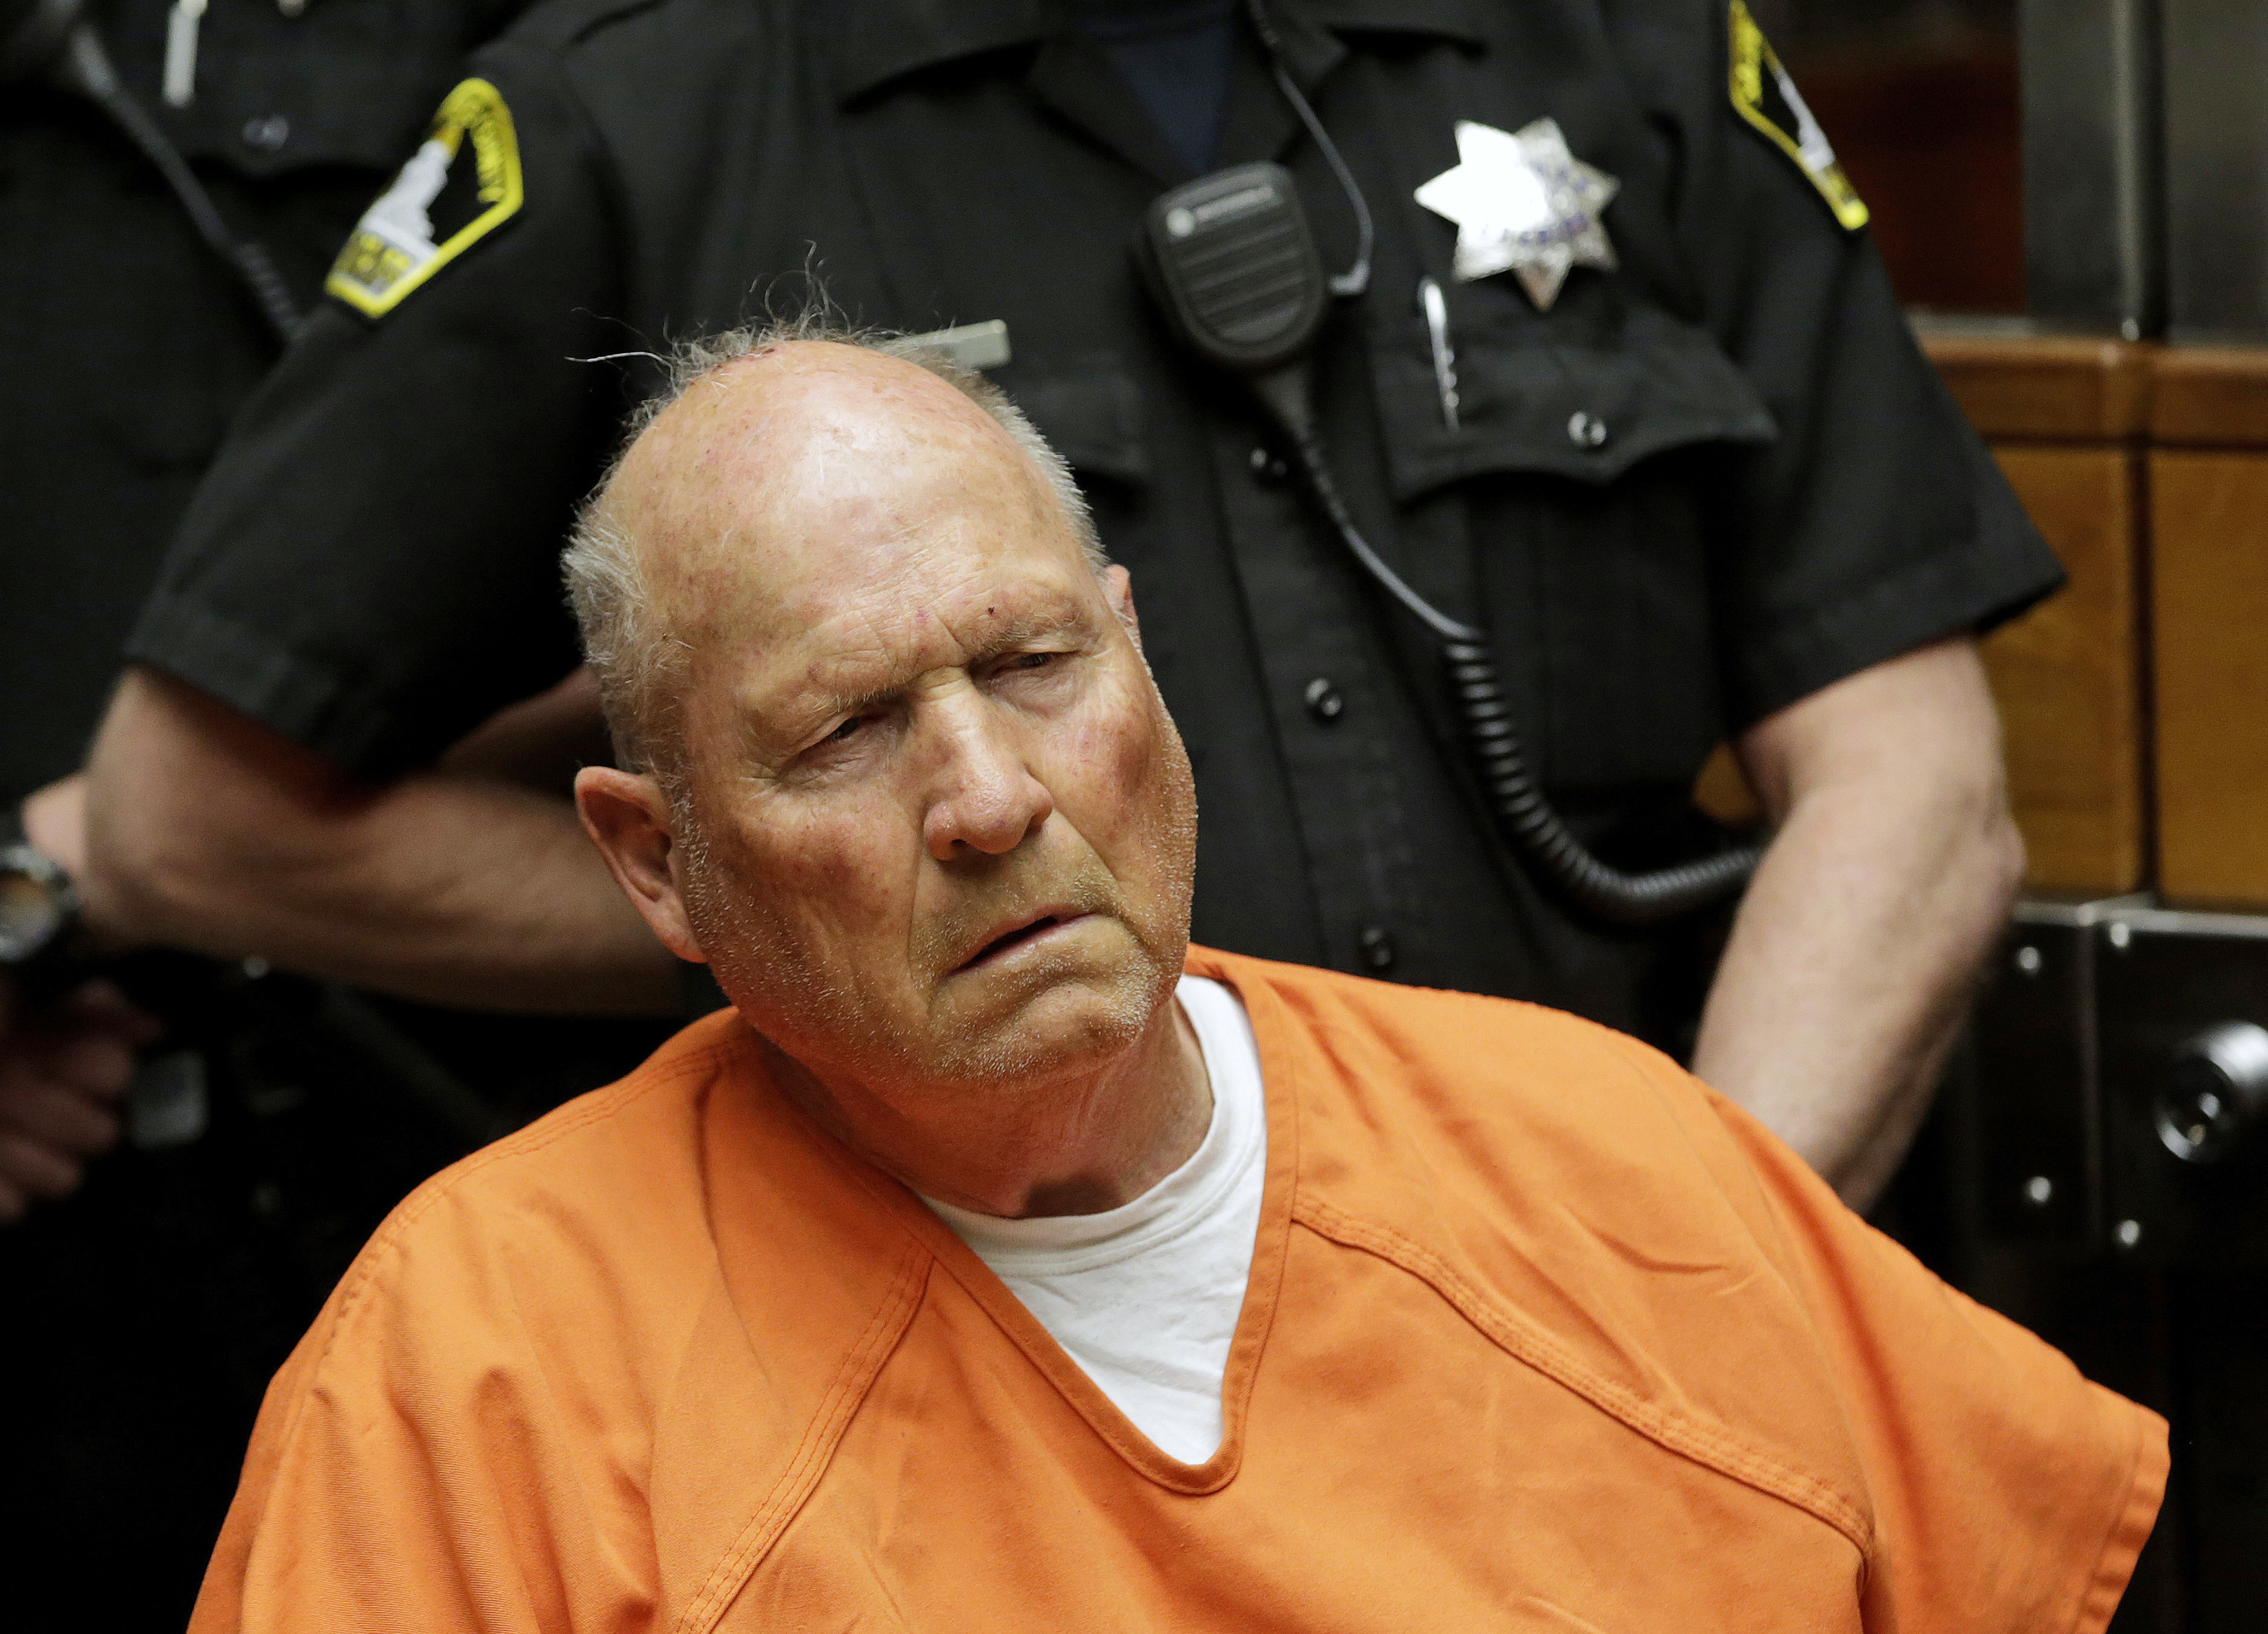 Photo of the Golden State Killer during his trial.